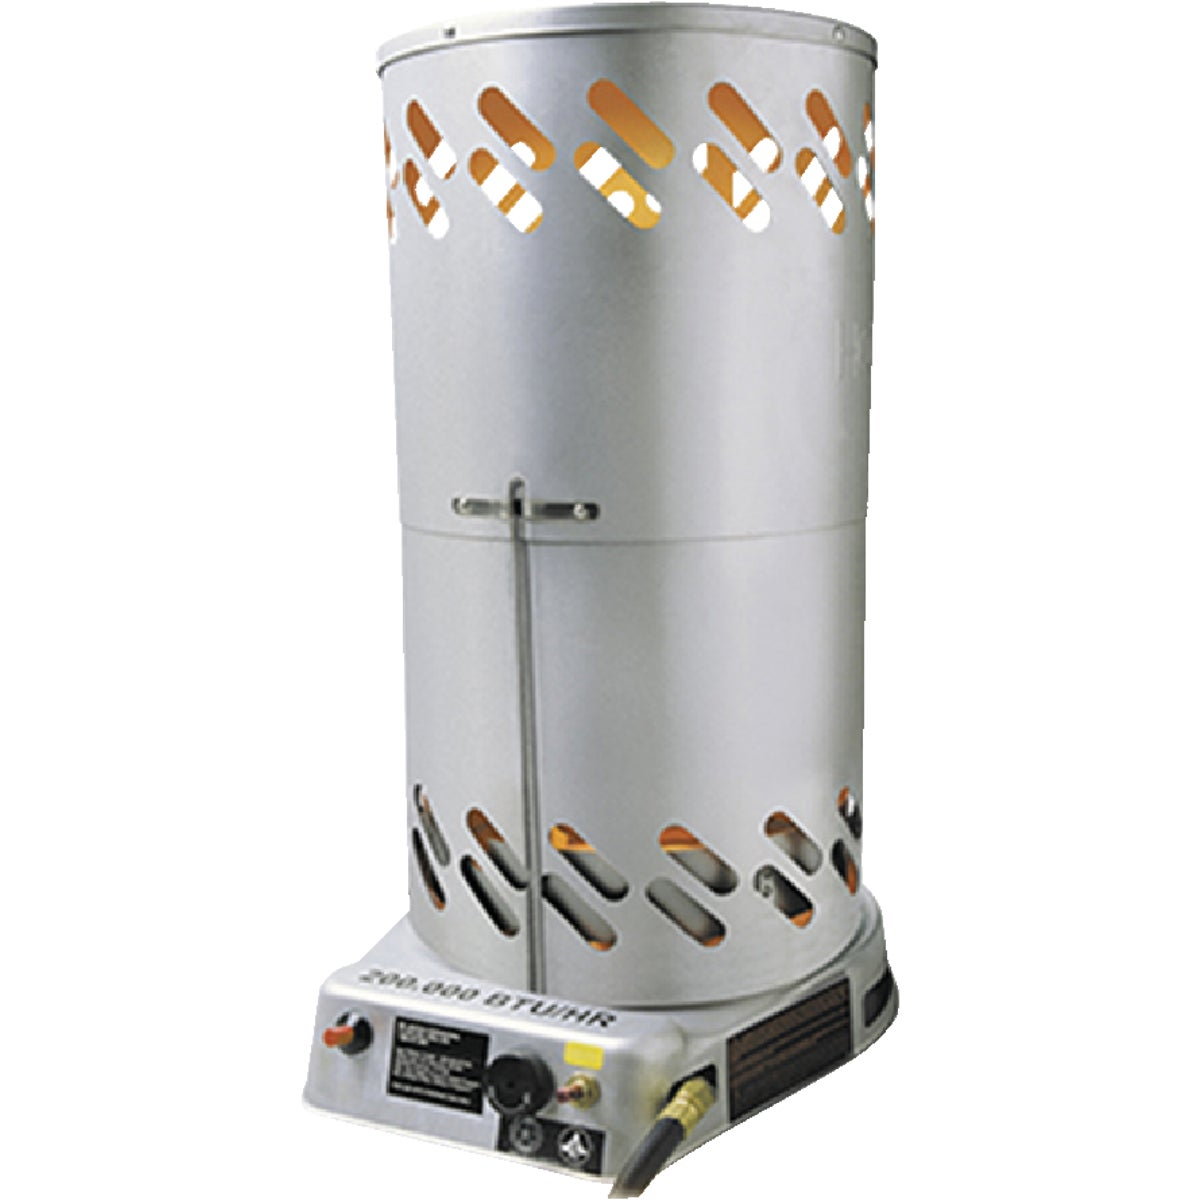 75-200K LP CONV HEATER - LPC200 by World Marketing